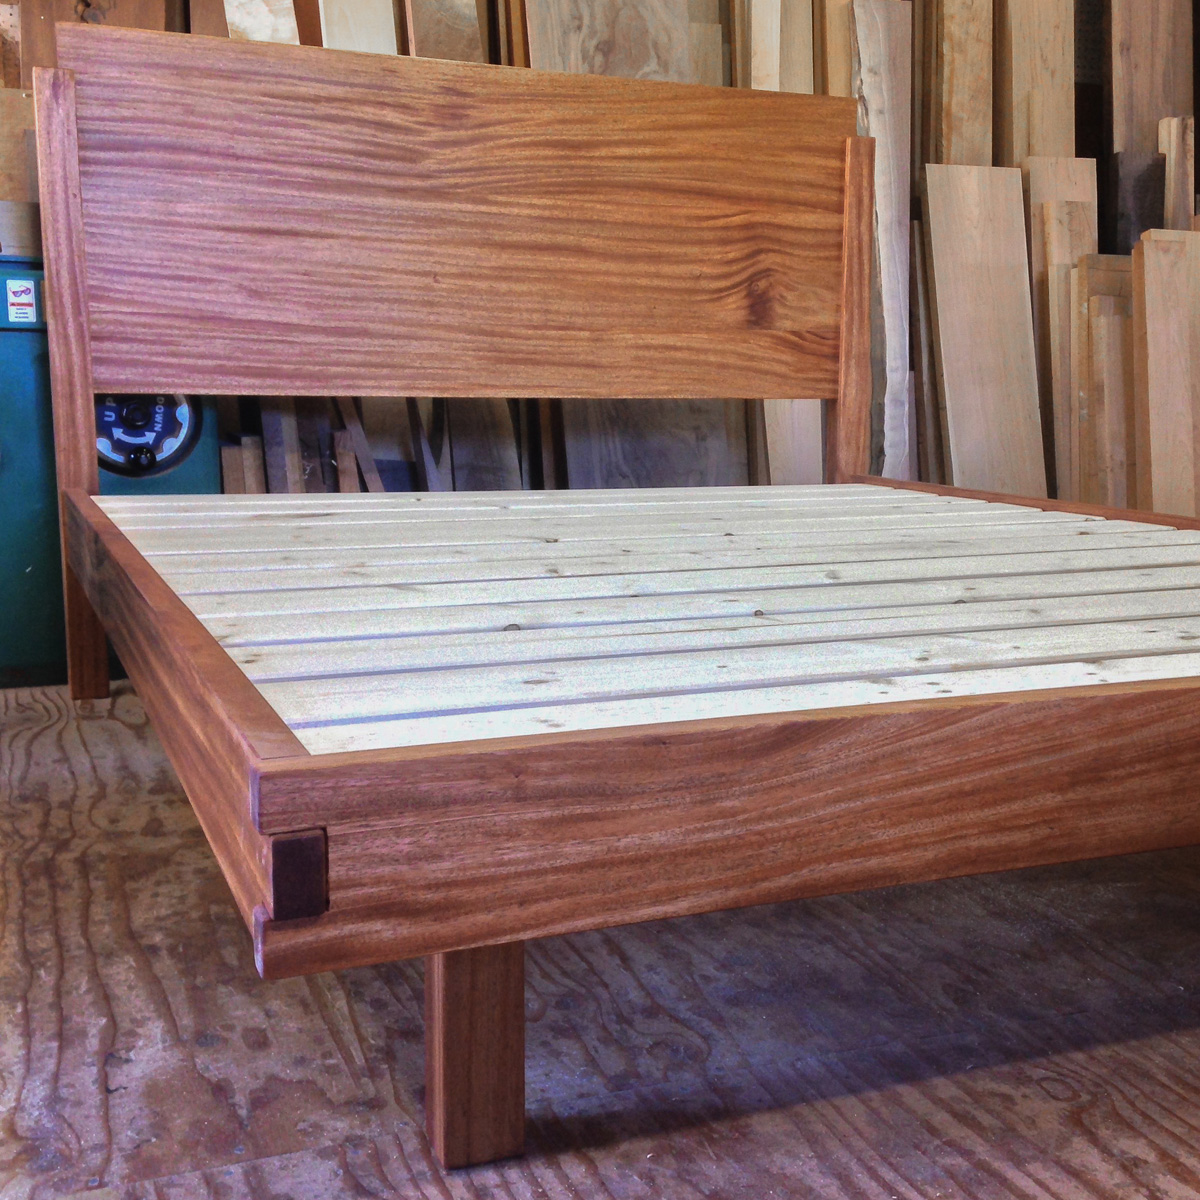 Mahogany platform bed with box joint footboard and recessed legs.